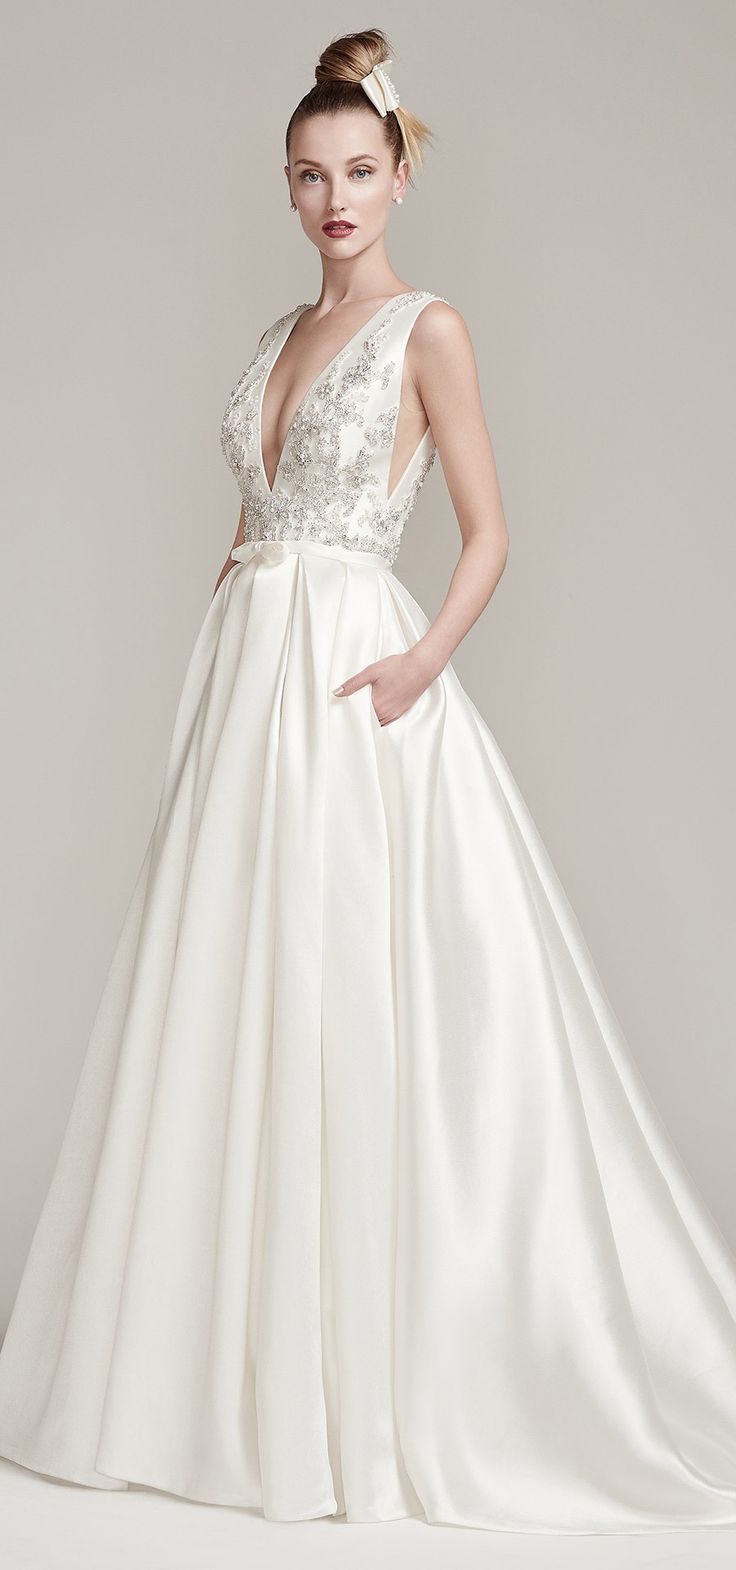 807 best wedding images on pinterest wedding dressses marriage maggie sottero wedding dresses ombrellifo Image collections